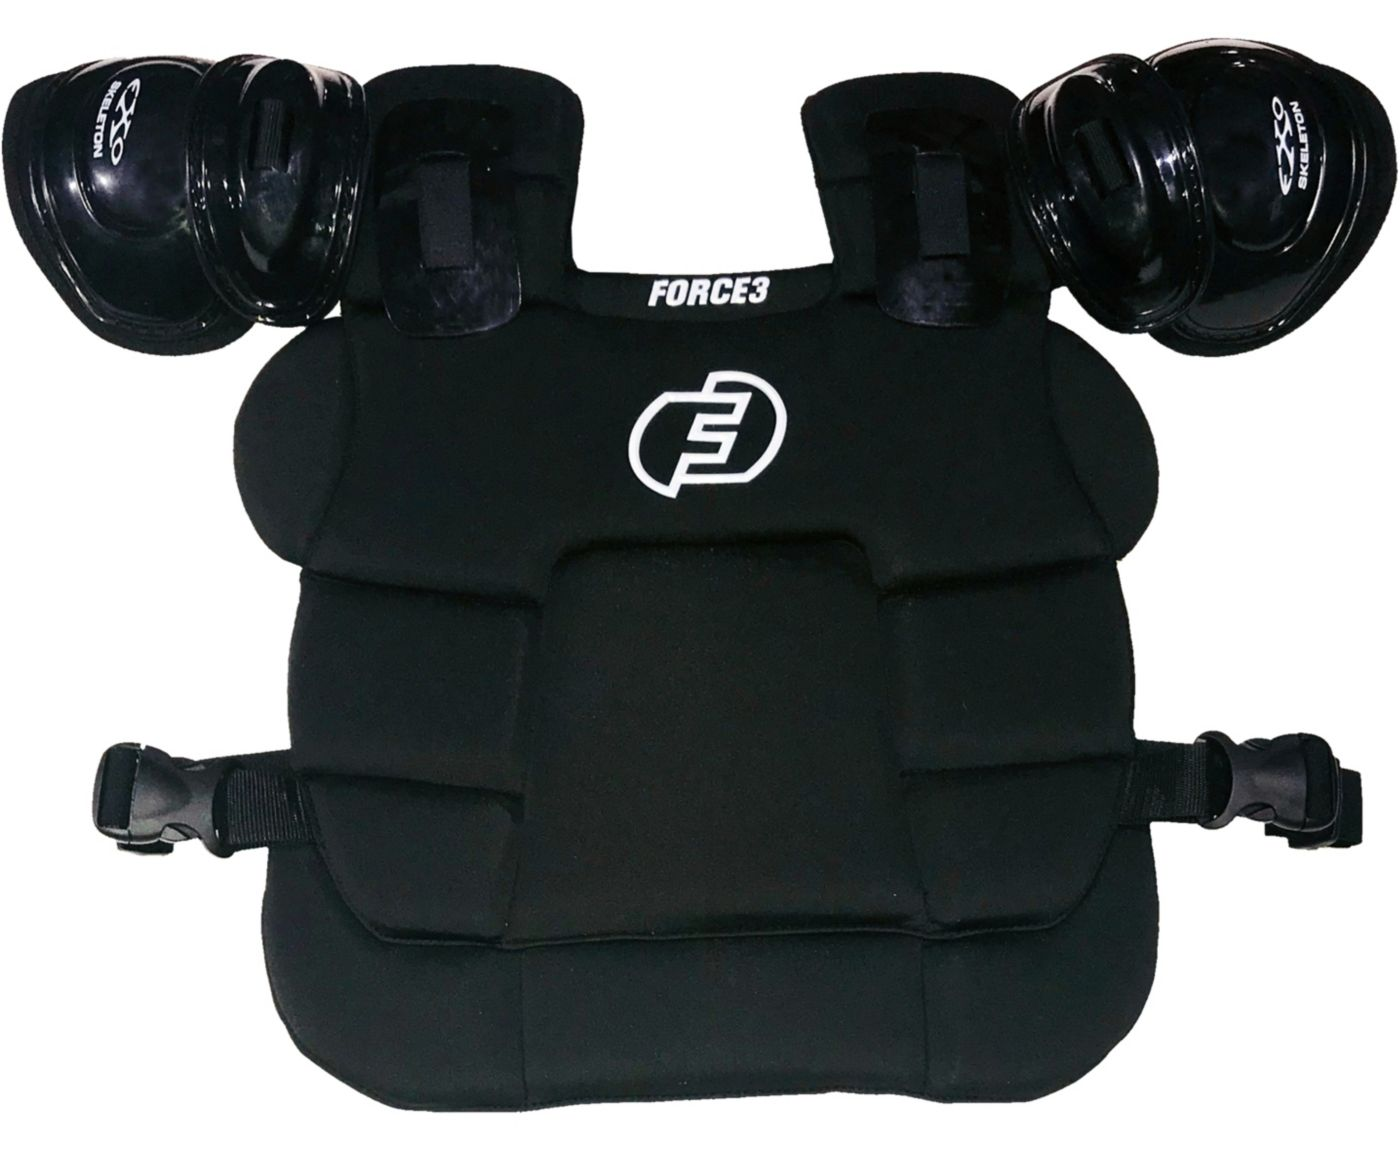 Force3 Pro Gear Adult Ultimate Umpire Chest Protector